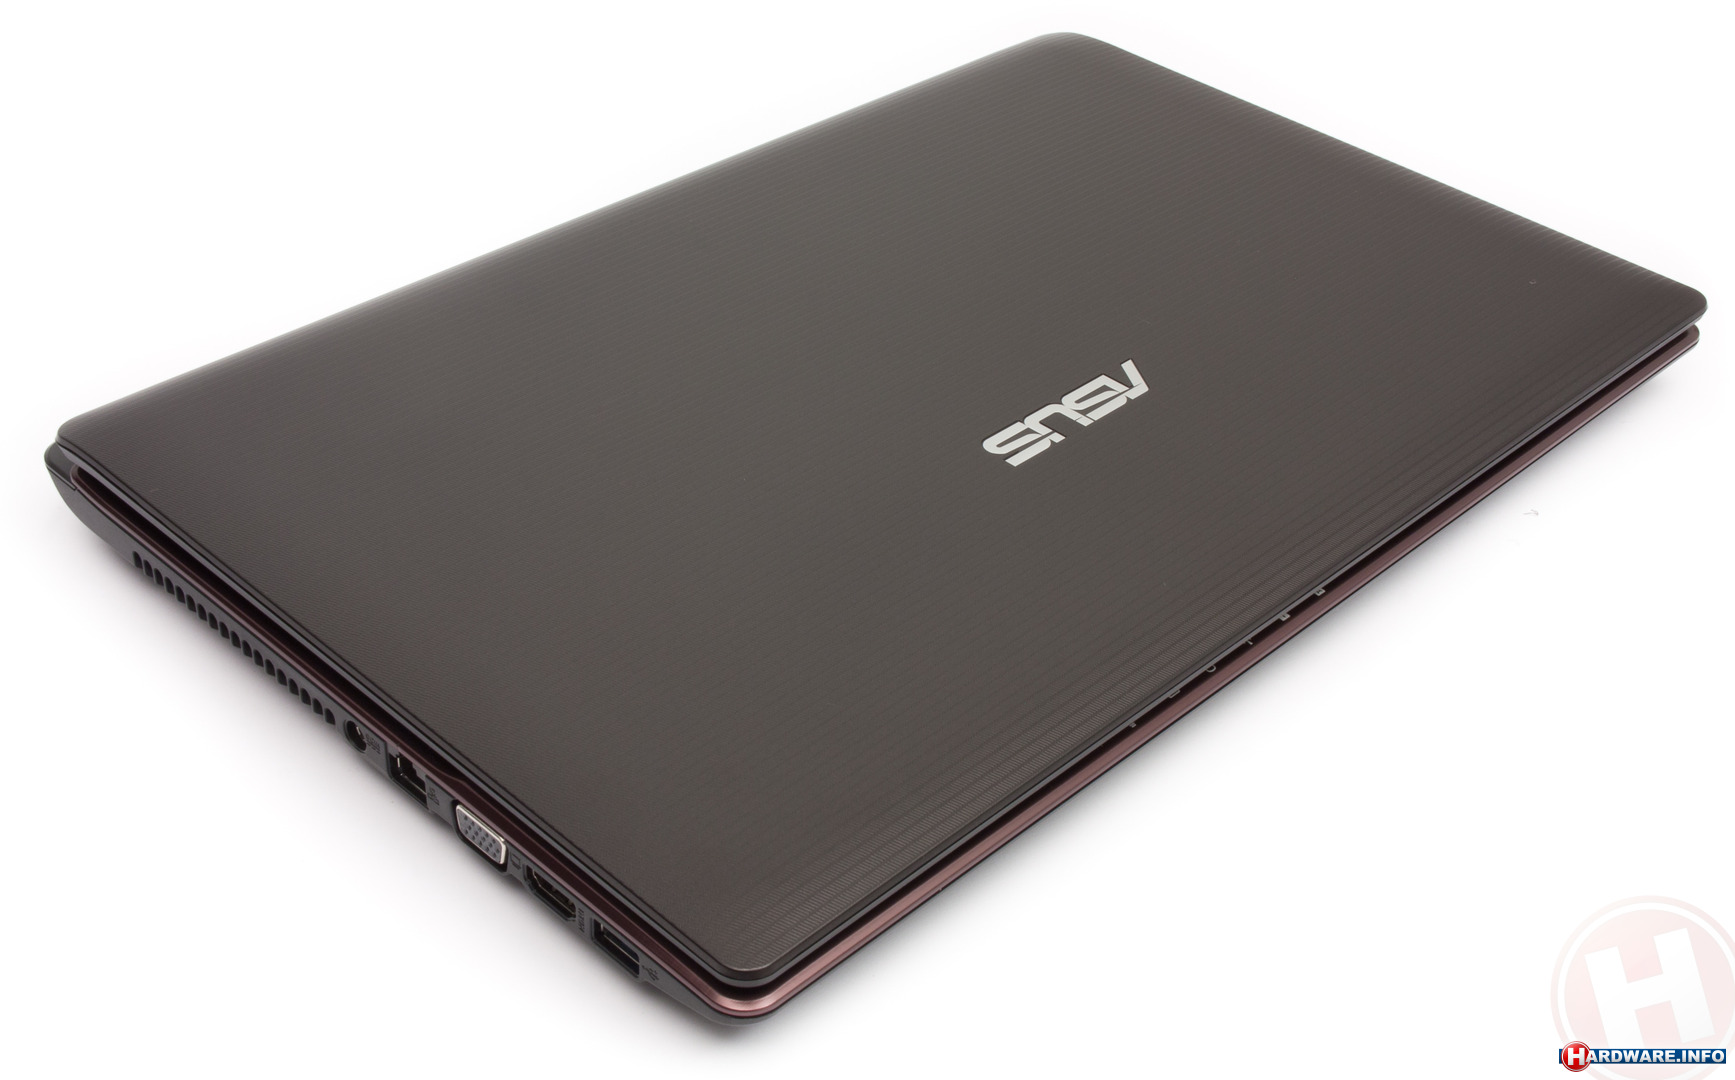 ASUS K53SC ATKACPI DRIVERS DOWNLOAD FREE